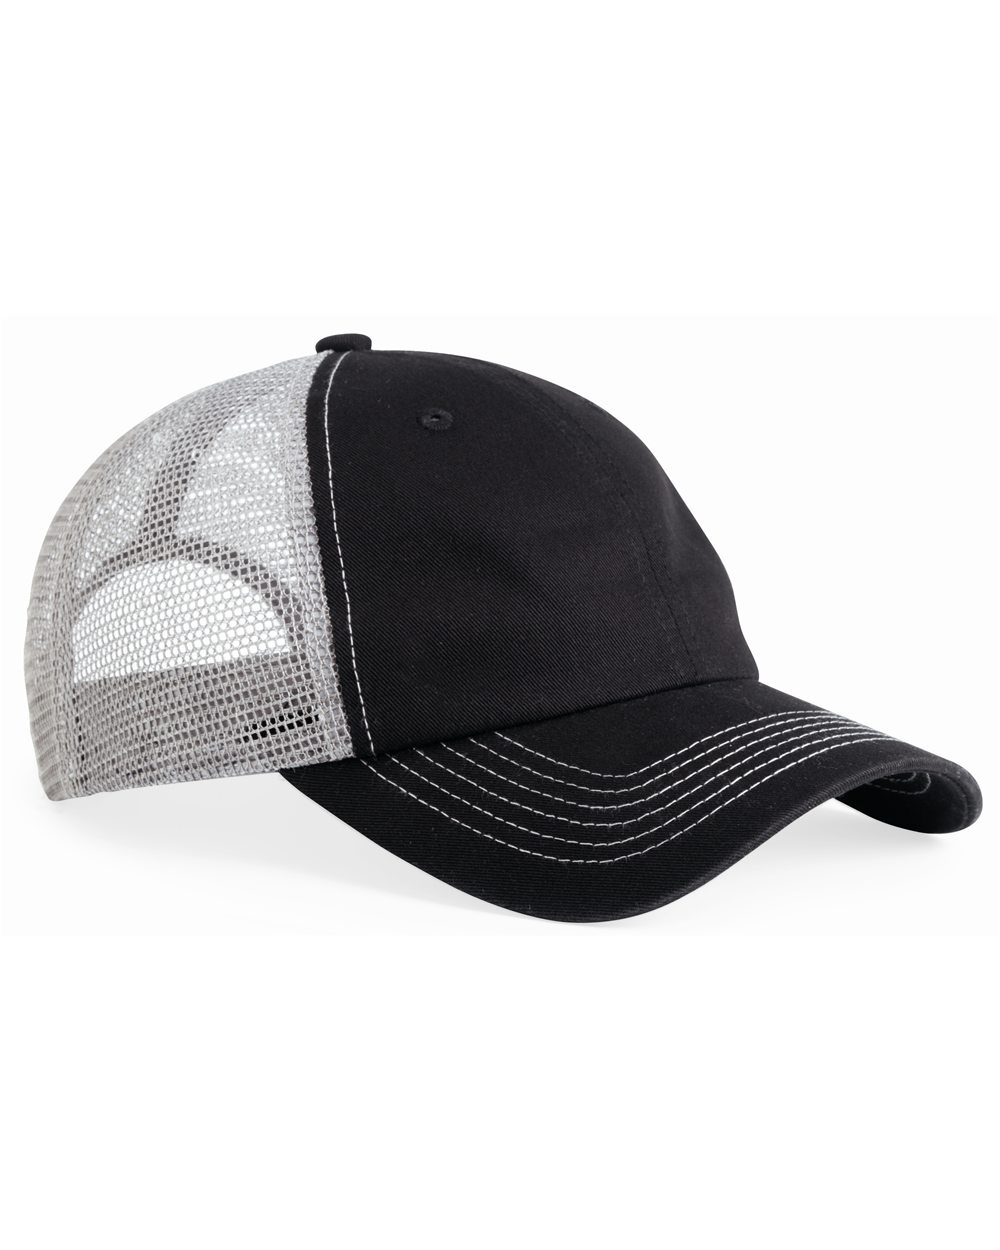 Shop for Trucker Hats & Mesh Caps at avupude.ml Browse for cool trucker hats like a snapback trucker hat or vintage trucker hat to show your fan pride! Lids is your one-stop shop for all kinds of great adjustable trucker caps and mesh trucker hats.